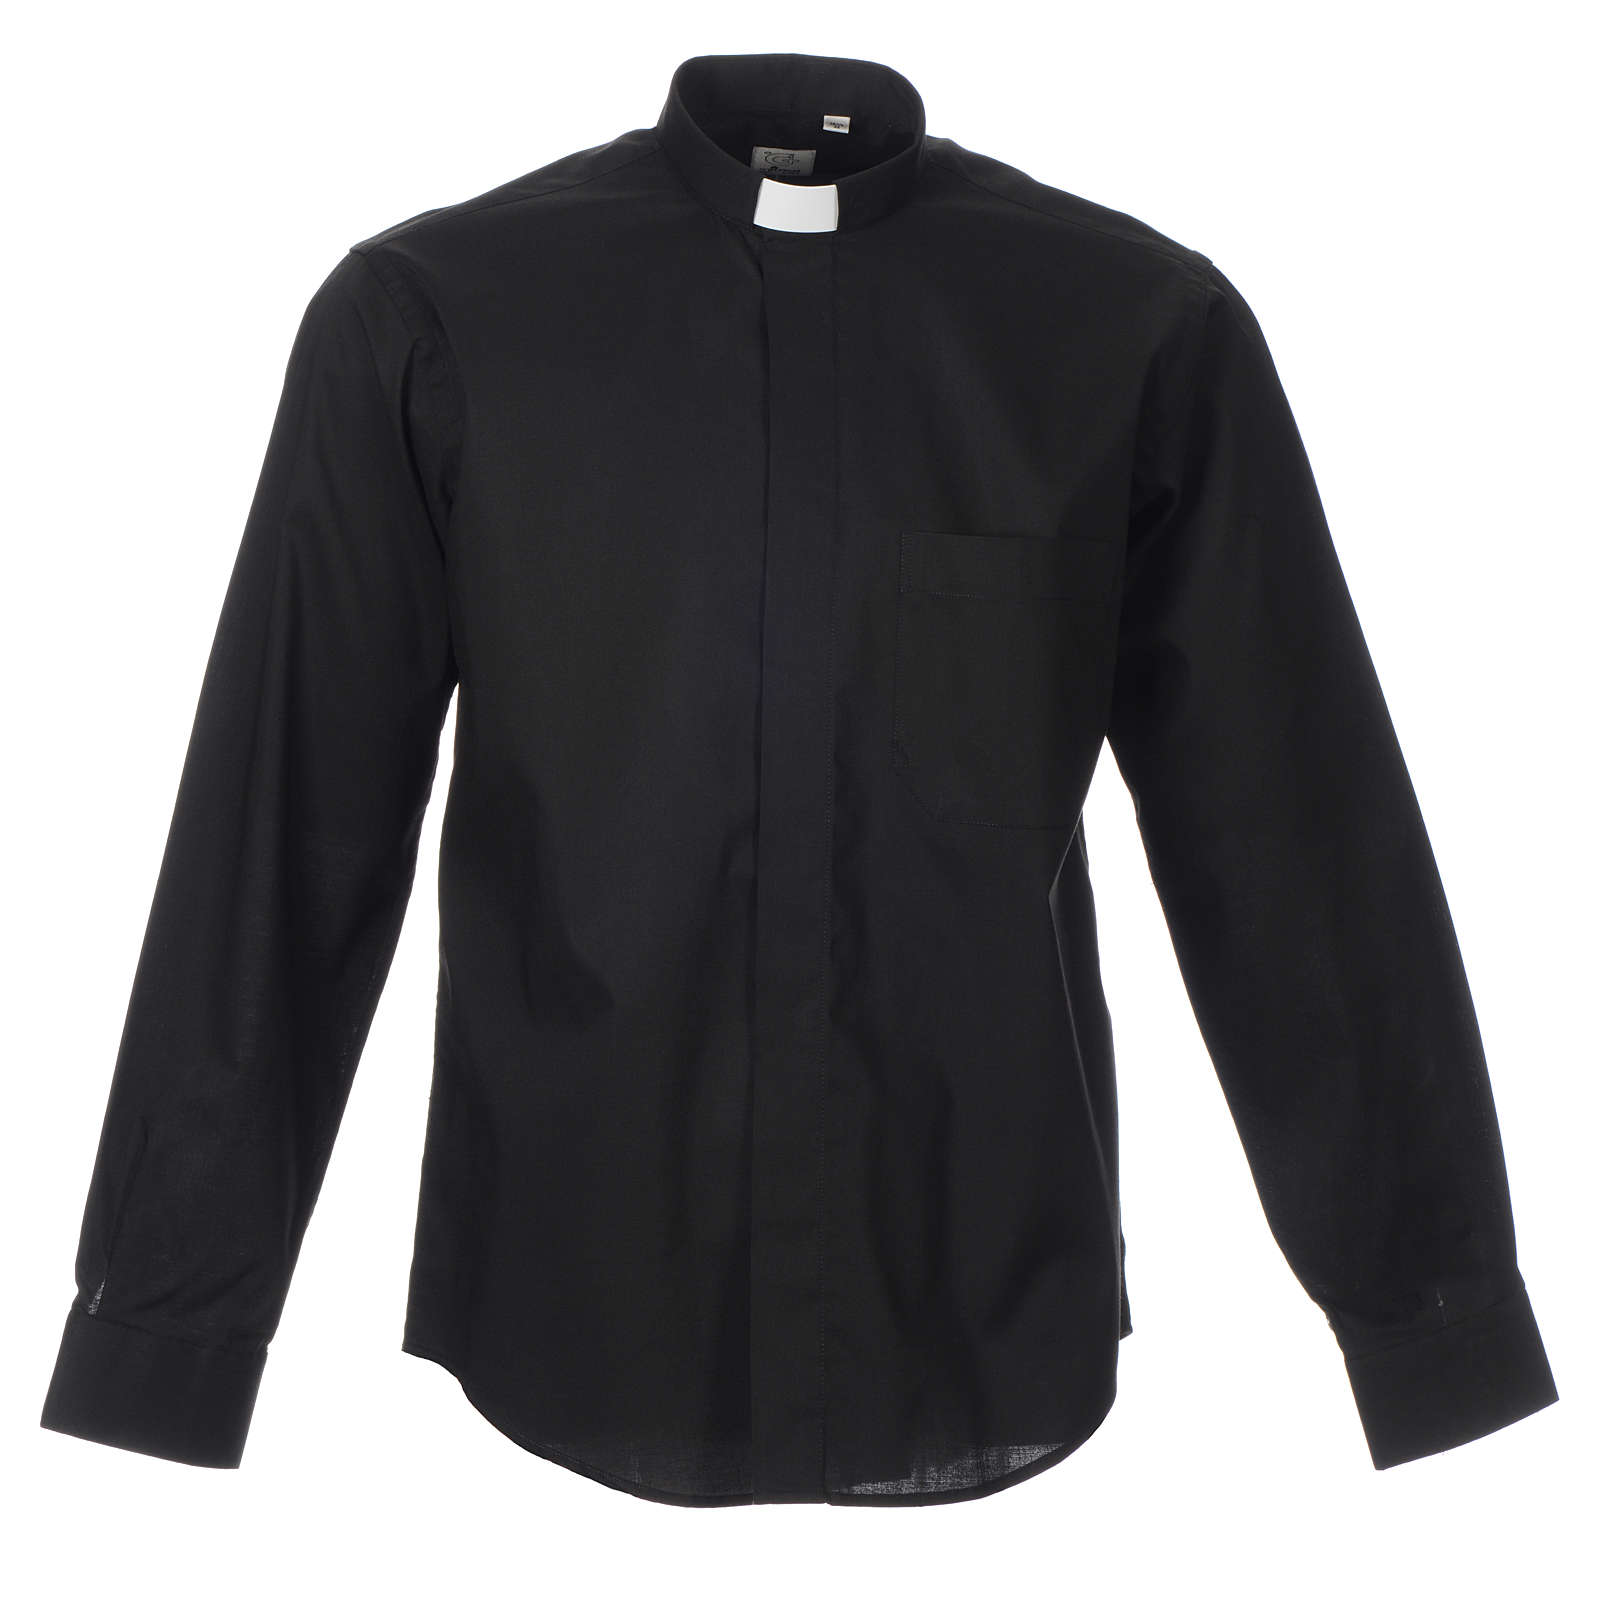 STOCK Clergy shirt, long sleeves in black mixed cotton 4